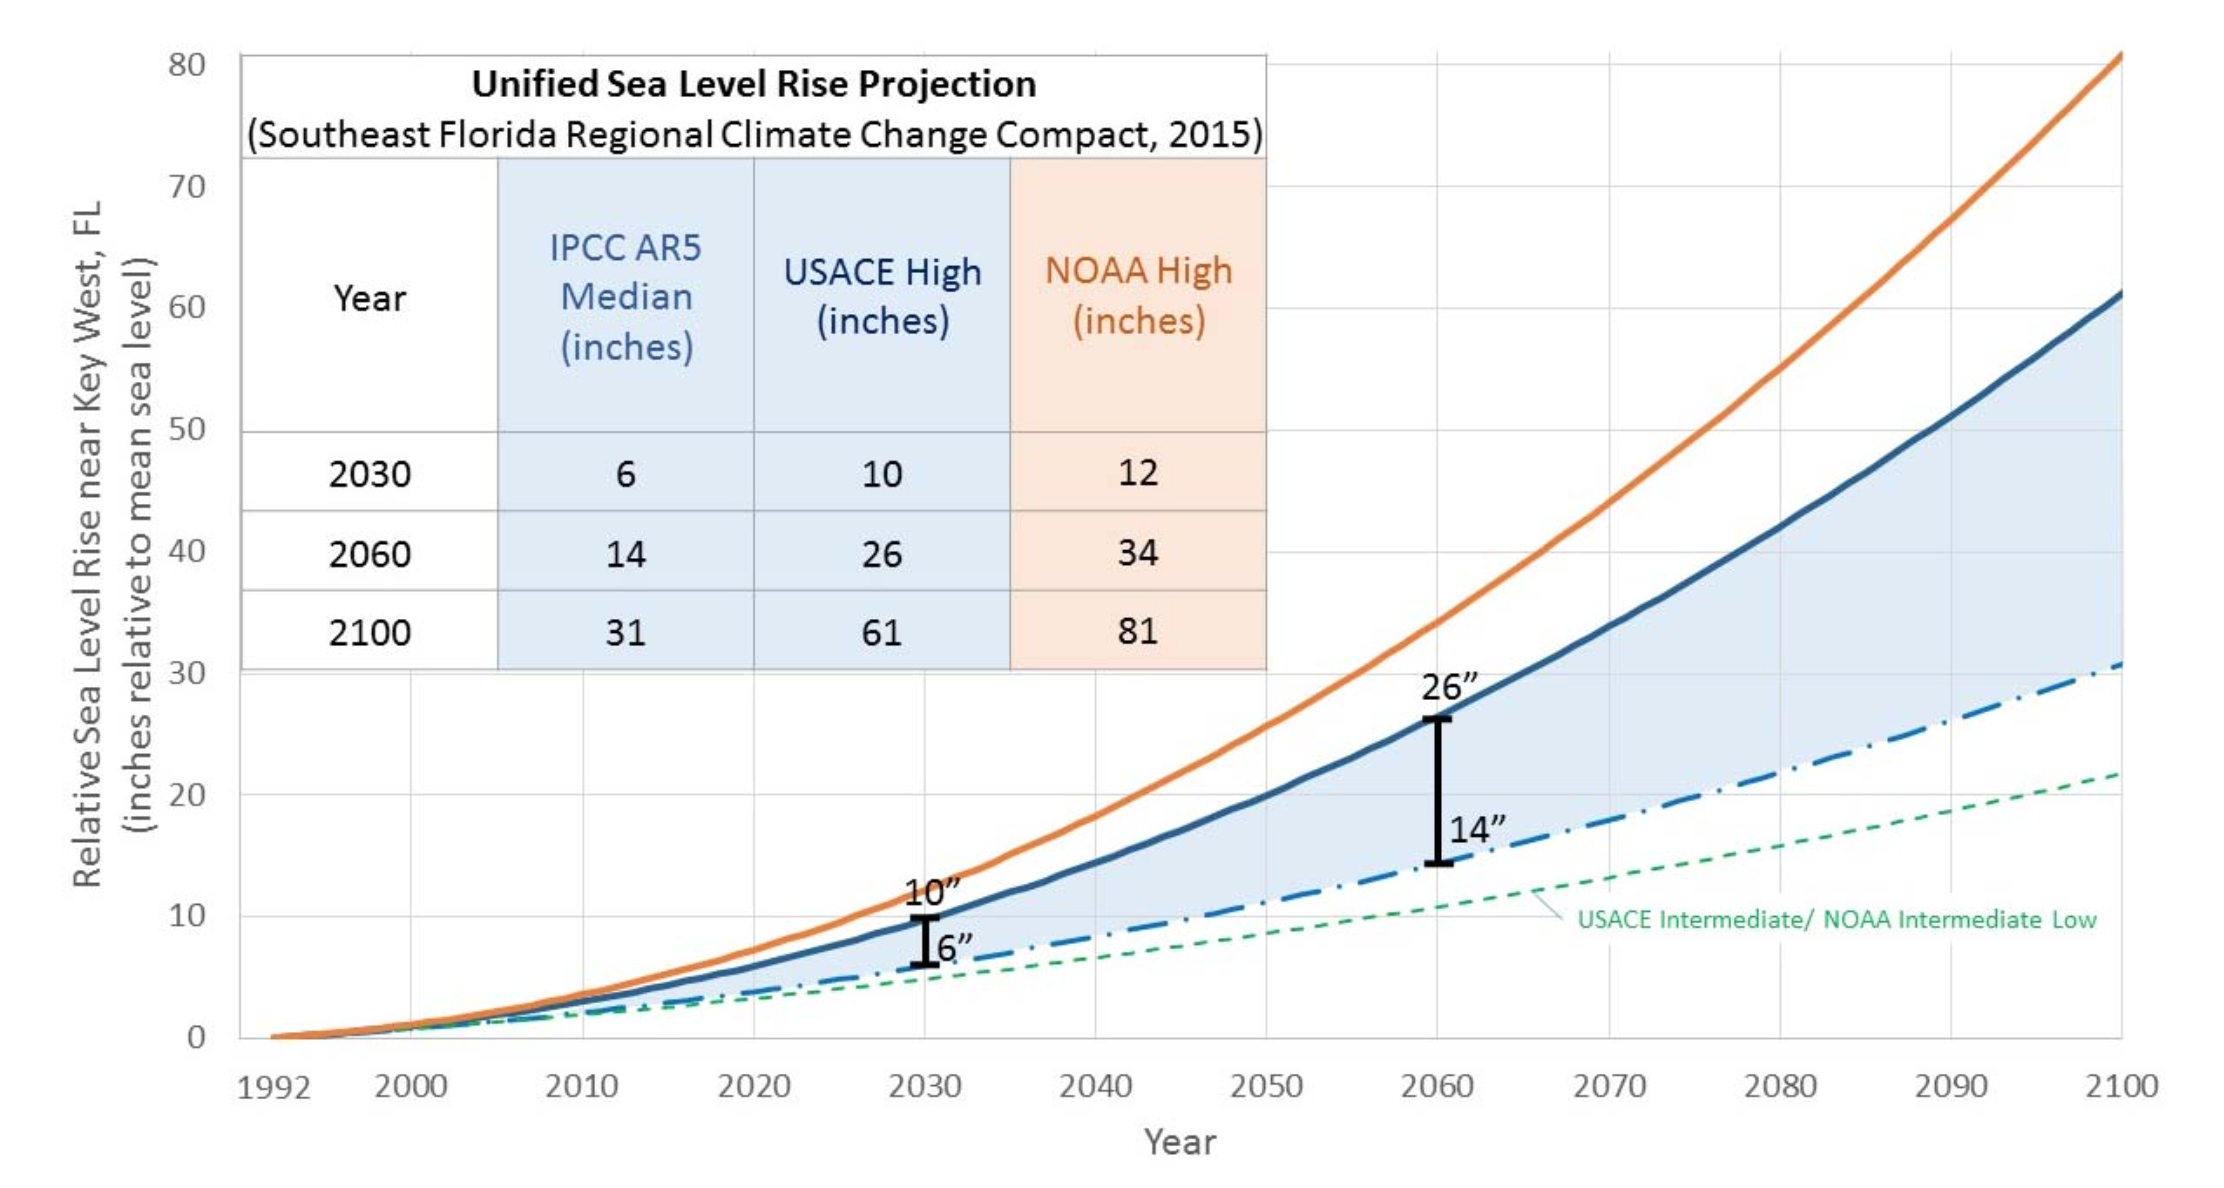 Southeast Florida Climate Compact Unified Sea Level Rise Projections